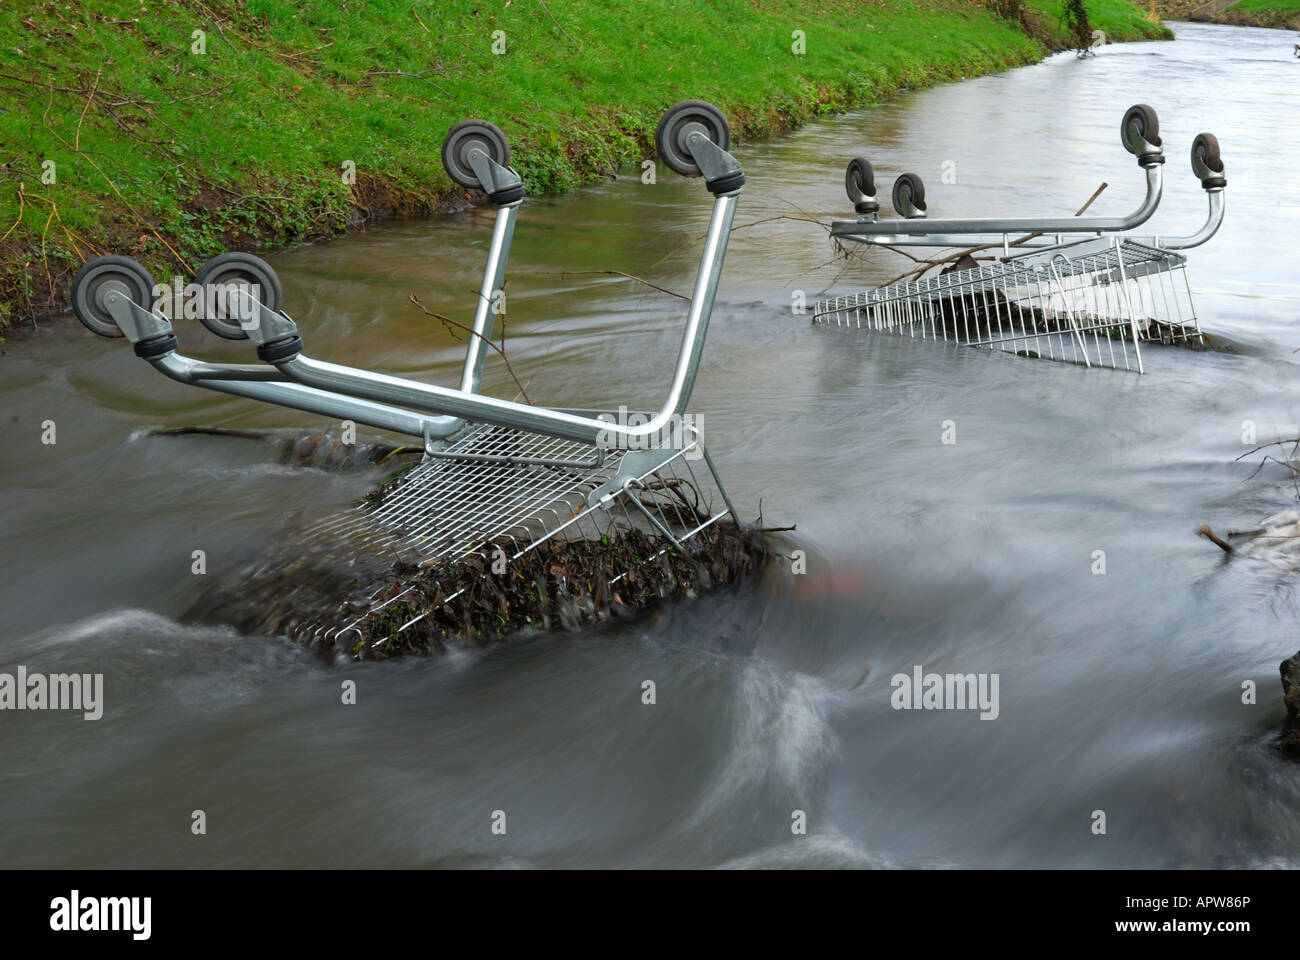 Shopping Trollies in River. - Stock Image